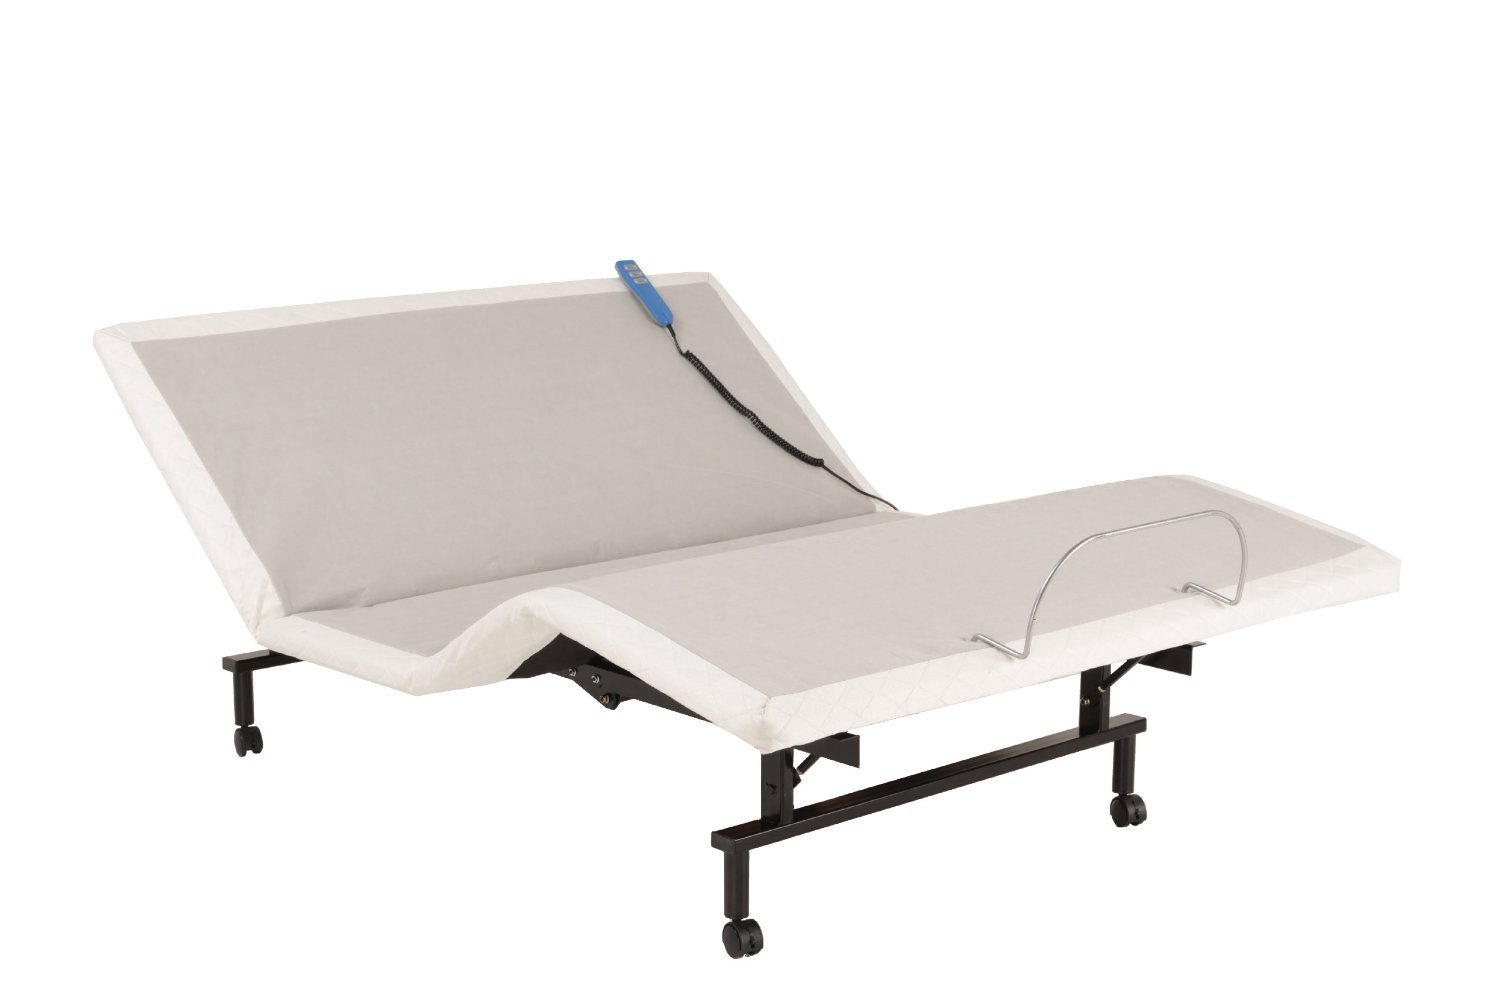 Top 10 Best Adjustable Bed Reviews Make Your Choice 2019